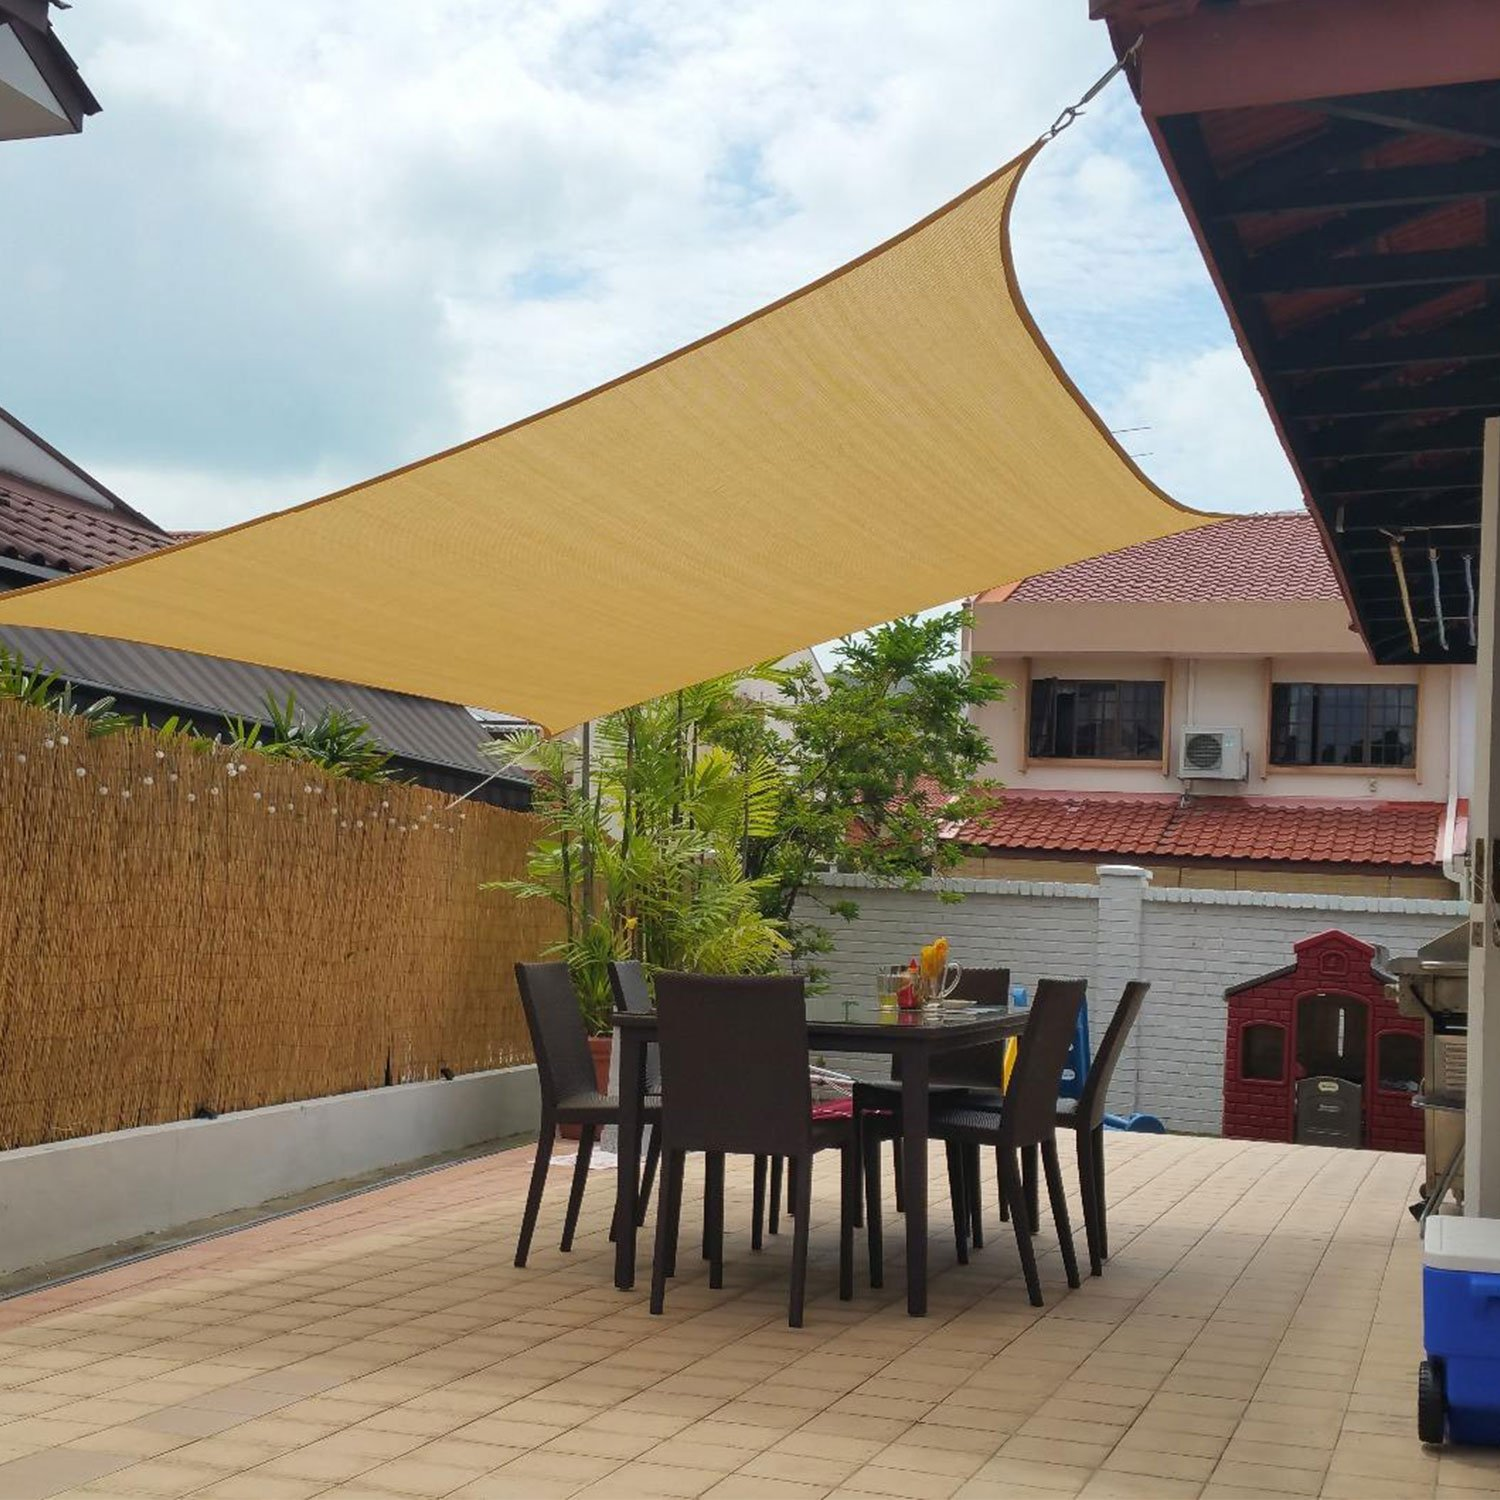 shade category cantilever awnings product awning sails experience perth carport